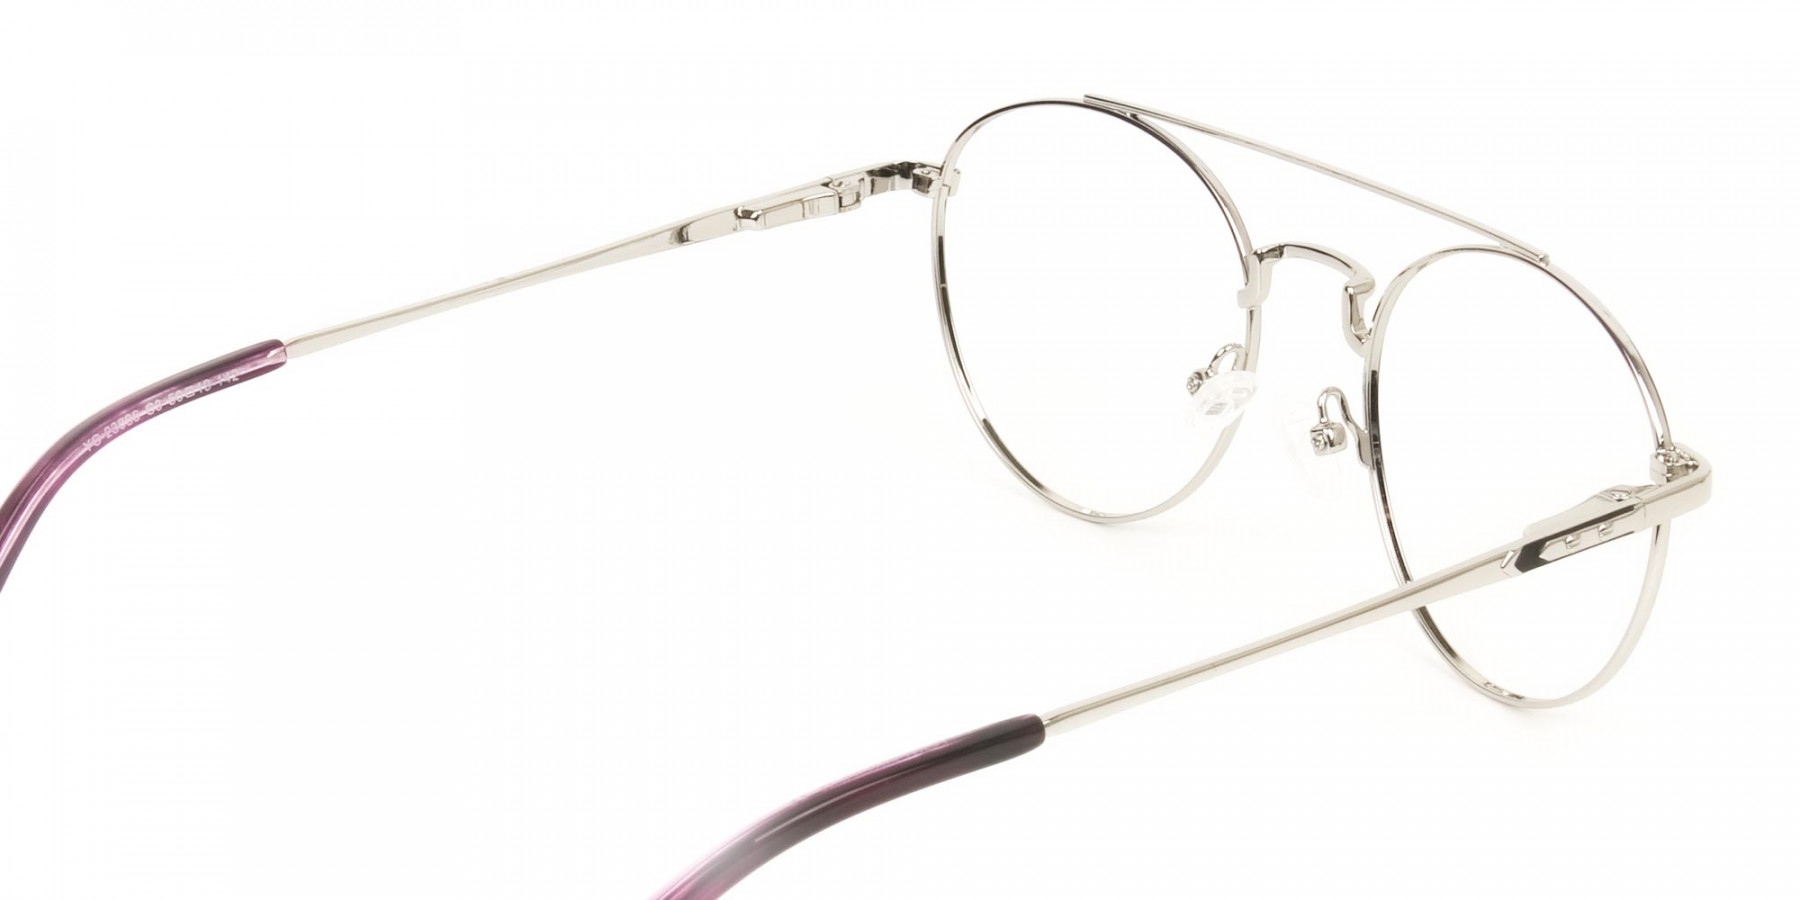 Lightweight Black & Silver Round Aviator Glasses in Metal - 1